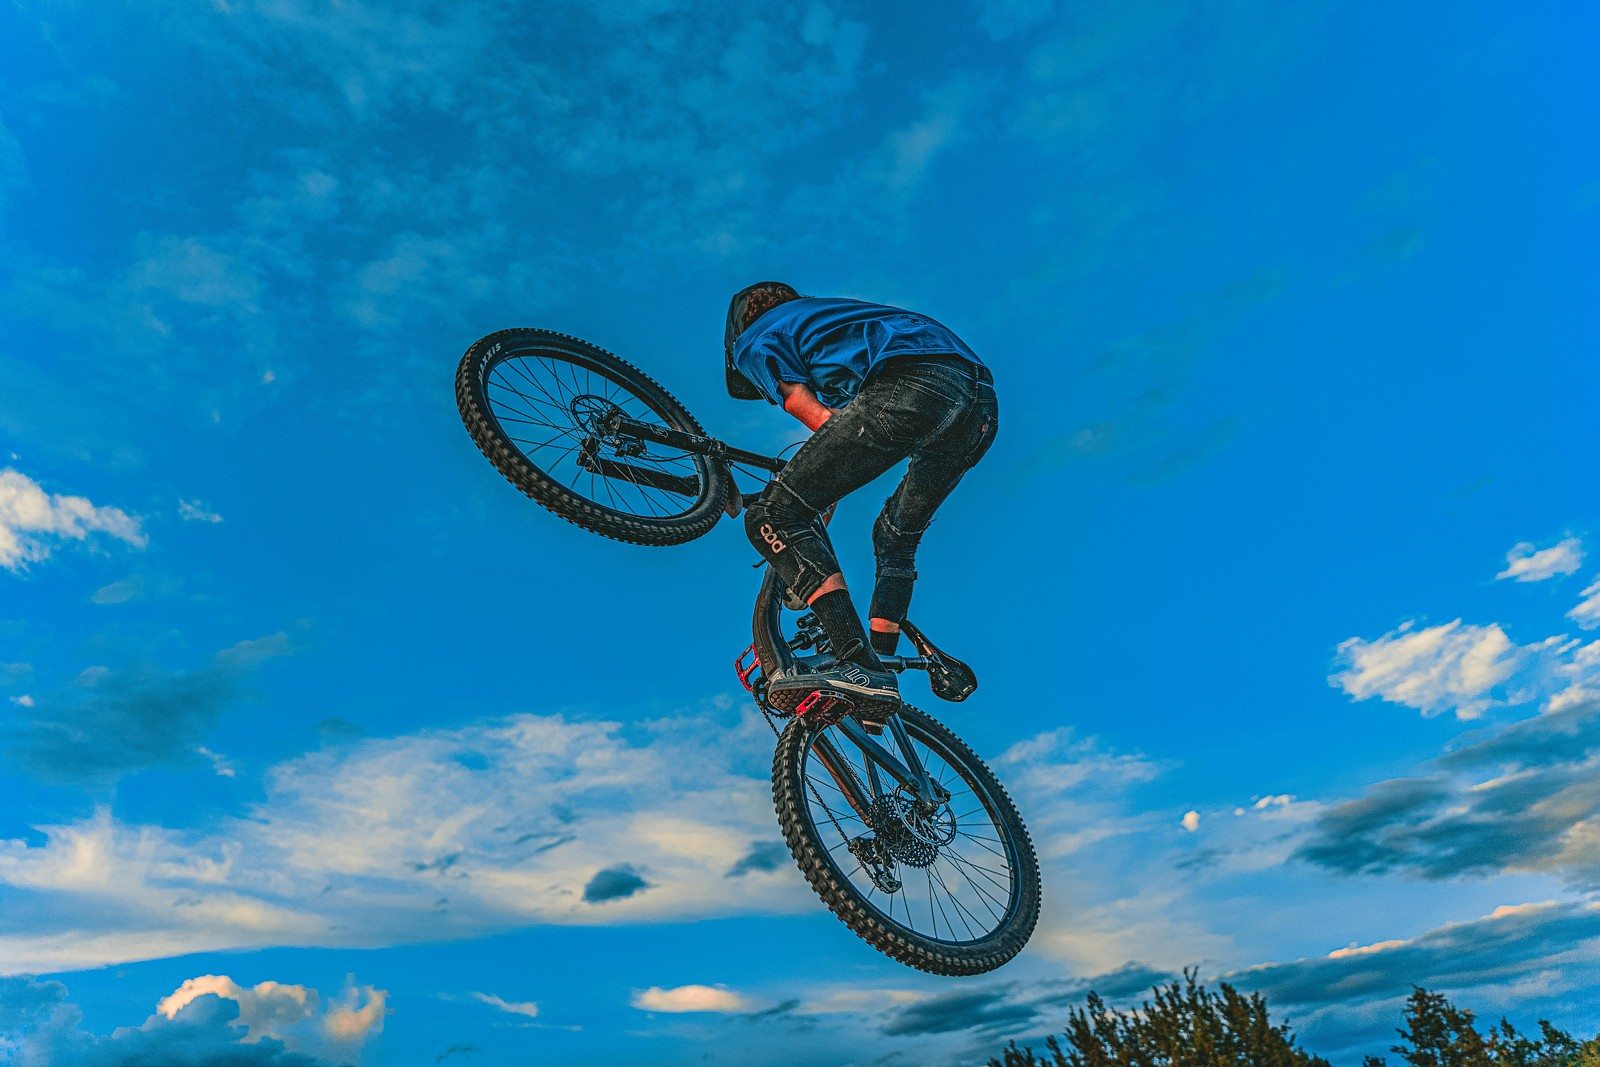 Henry getting sideways - legpwr - Mountain Biking Pictures - Vital MTB